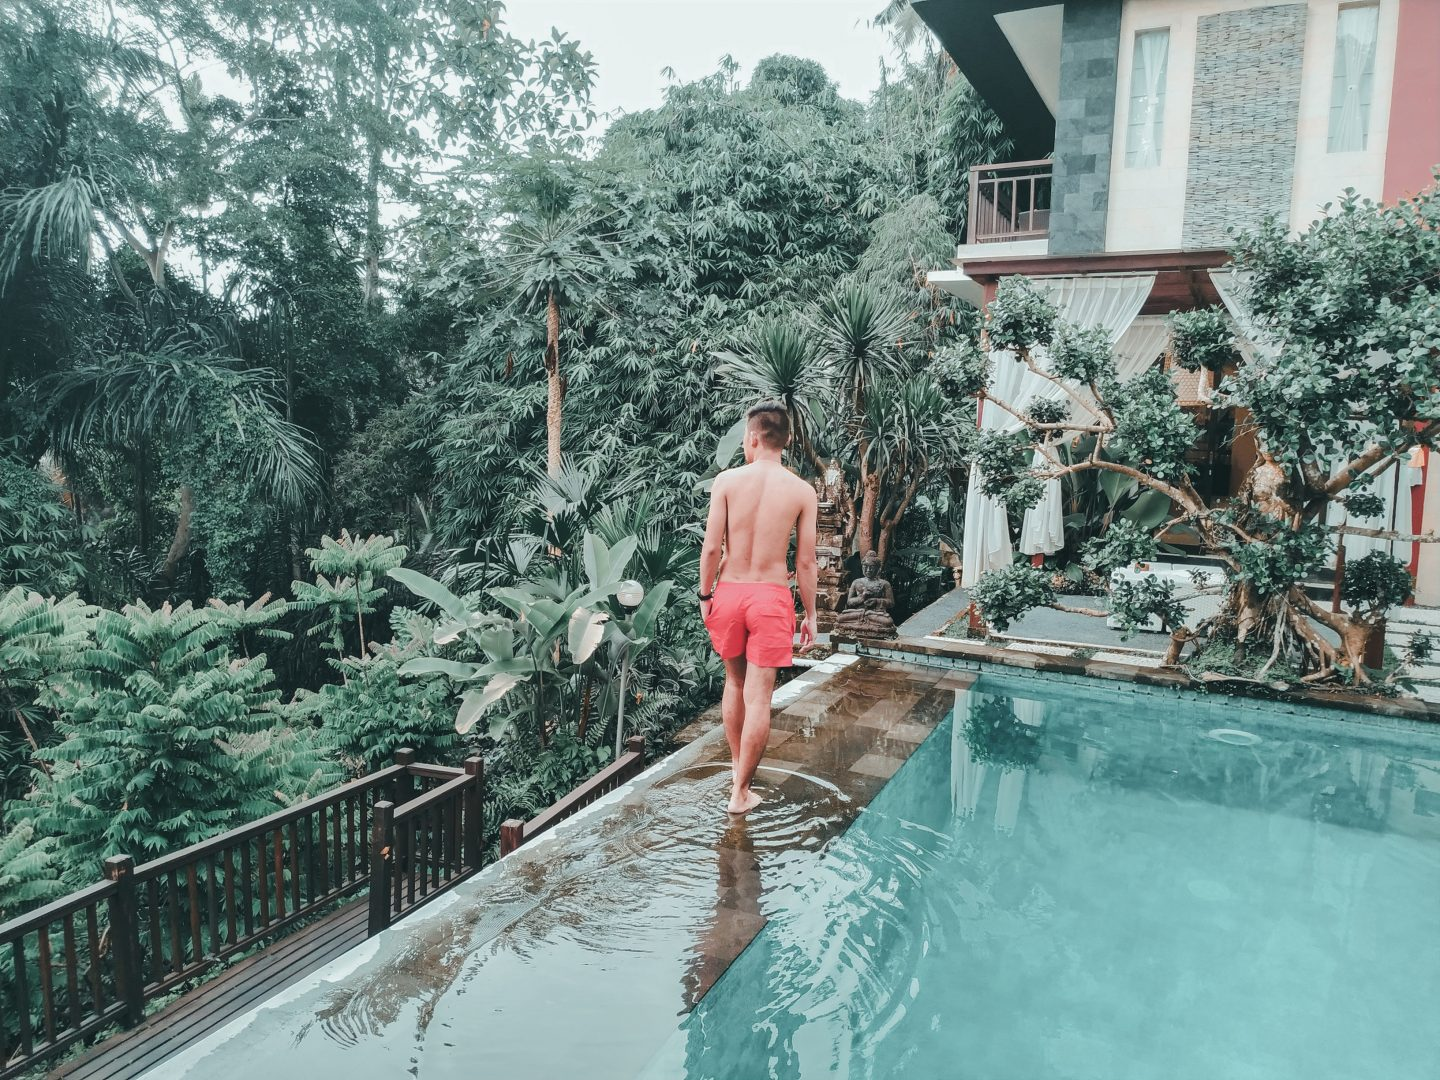 4d3n-bali-itinerary-complete-with-tours-costs-and-villas